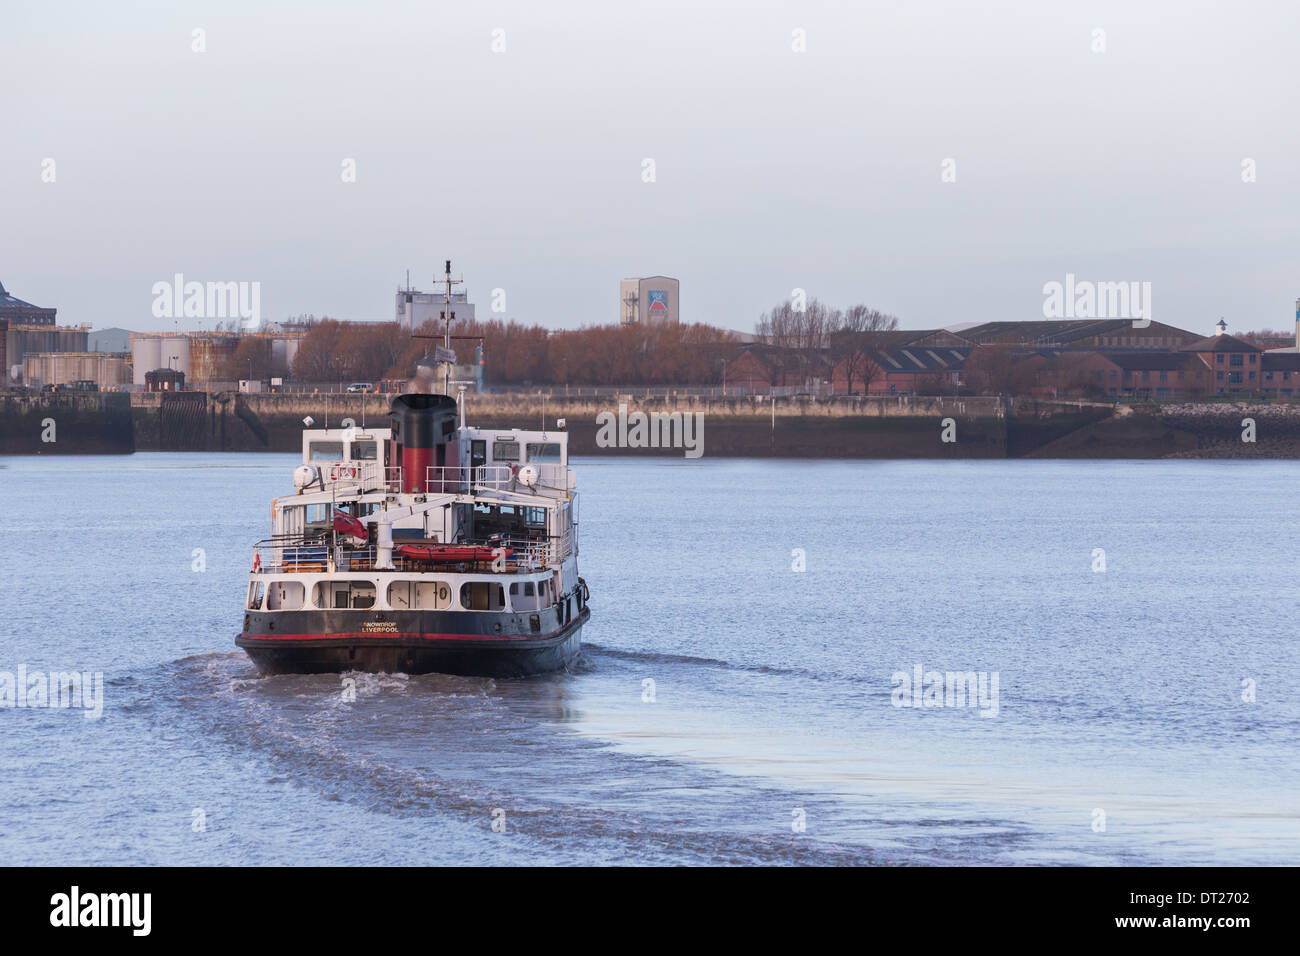 MV Snowdrop, one of the Mersey Ferries on the River Mersey. - Stock Image